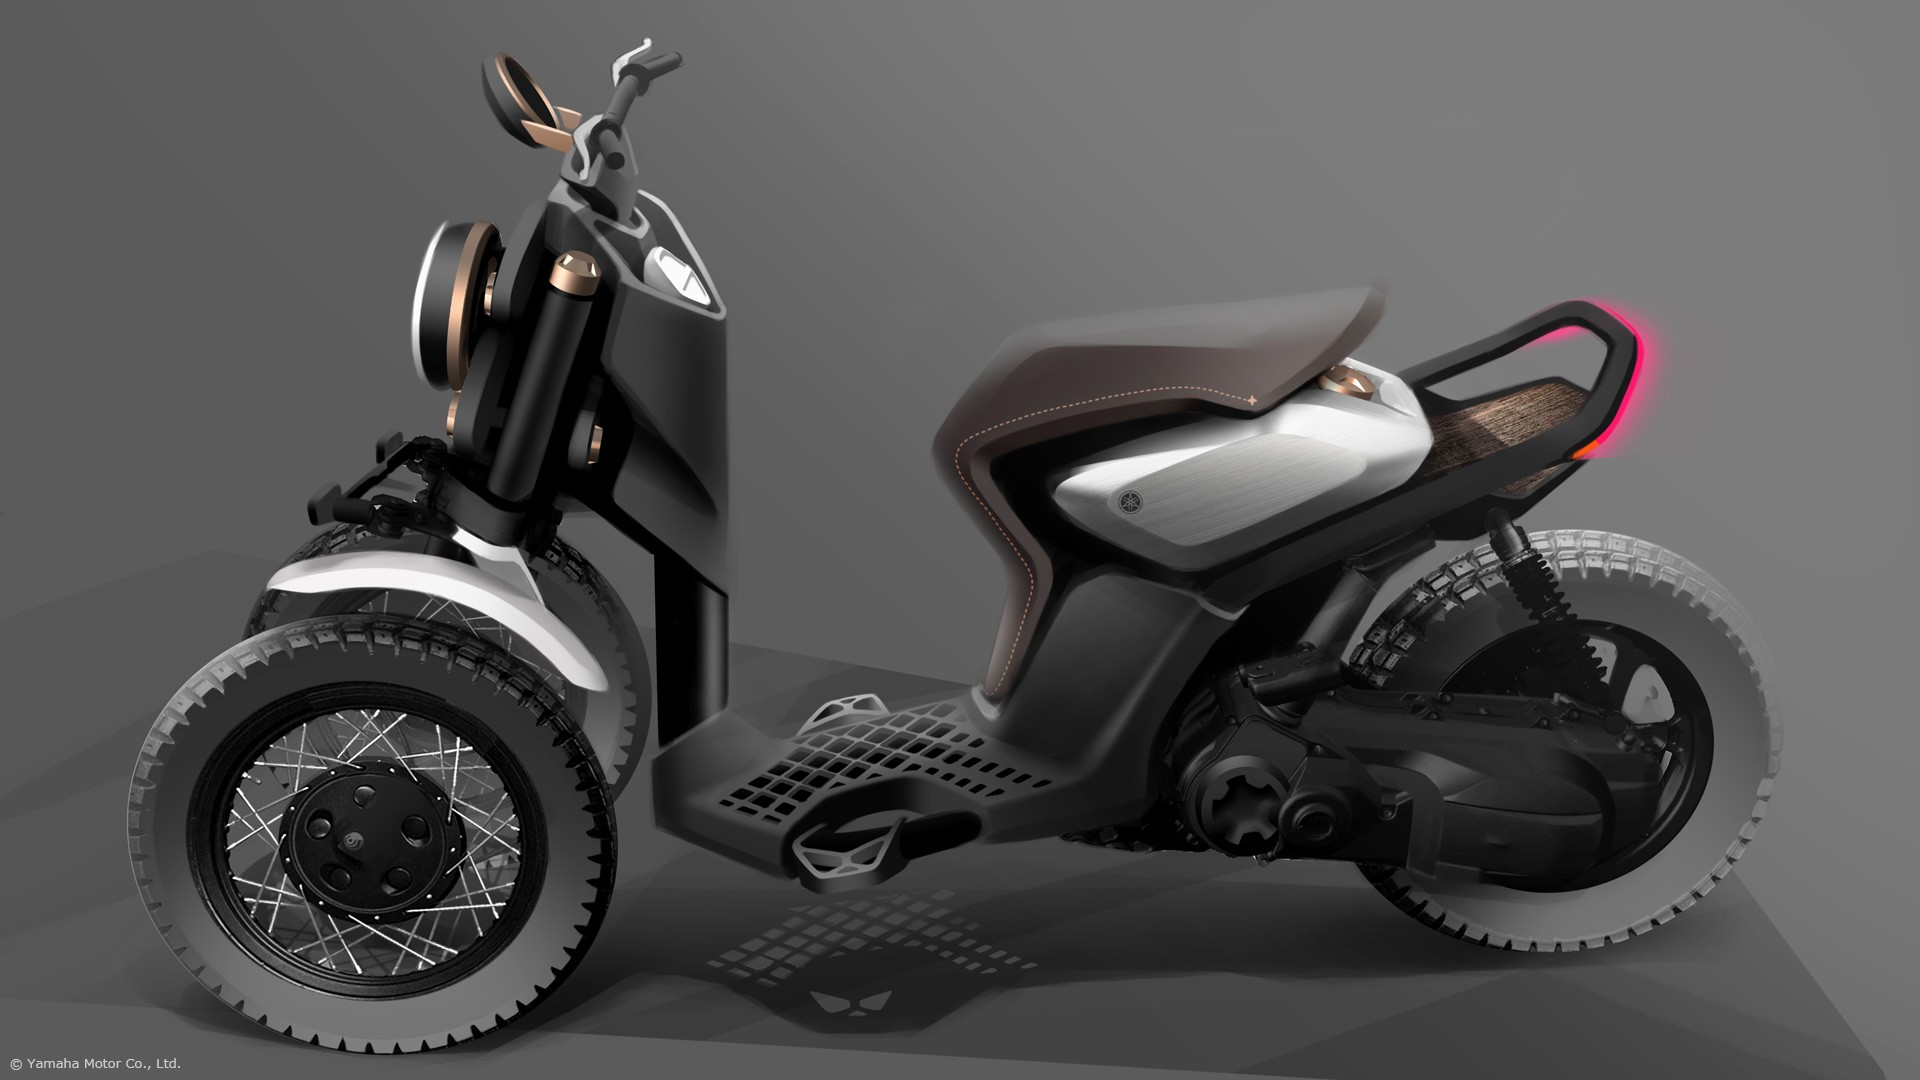 yamaha concept scooter three wheeled concepts shows autoevolution dirty ready models bikes